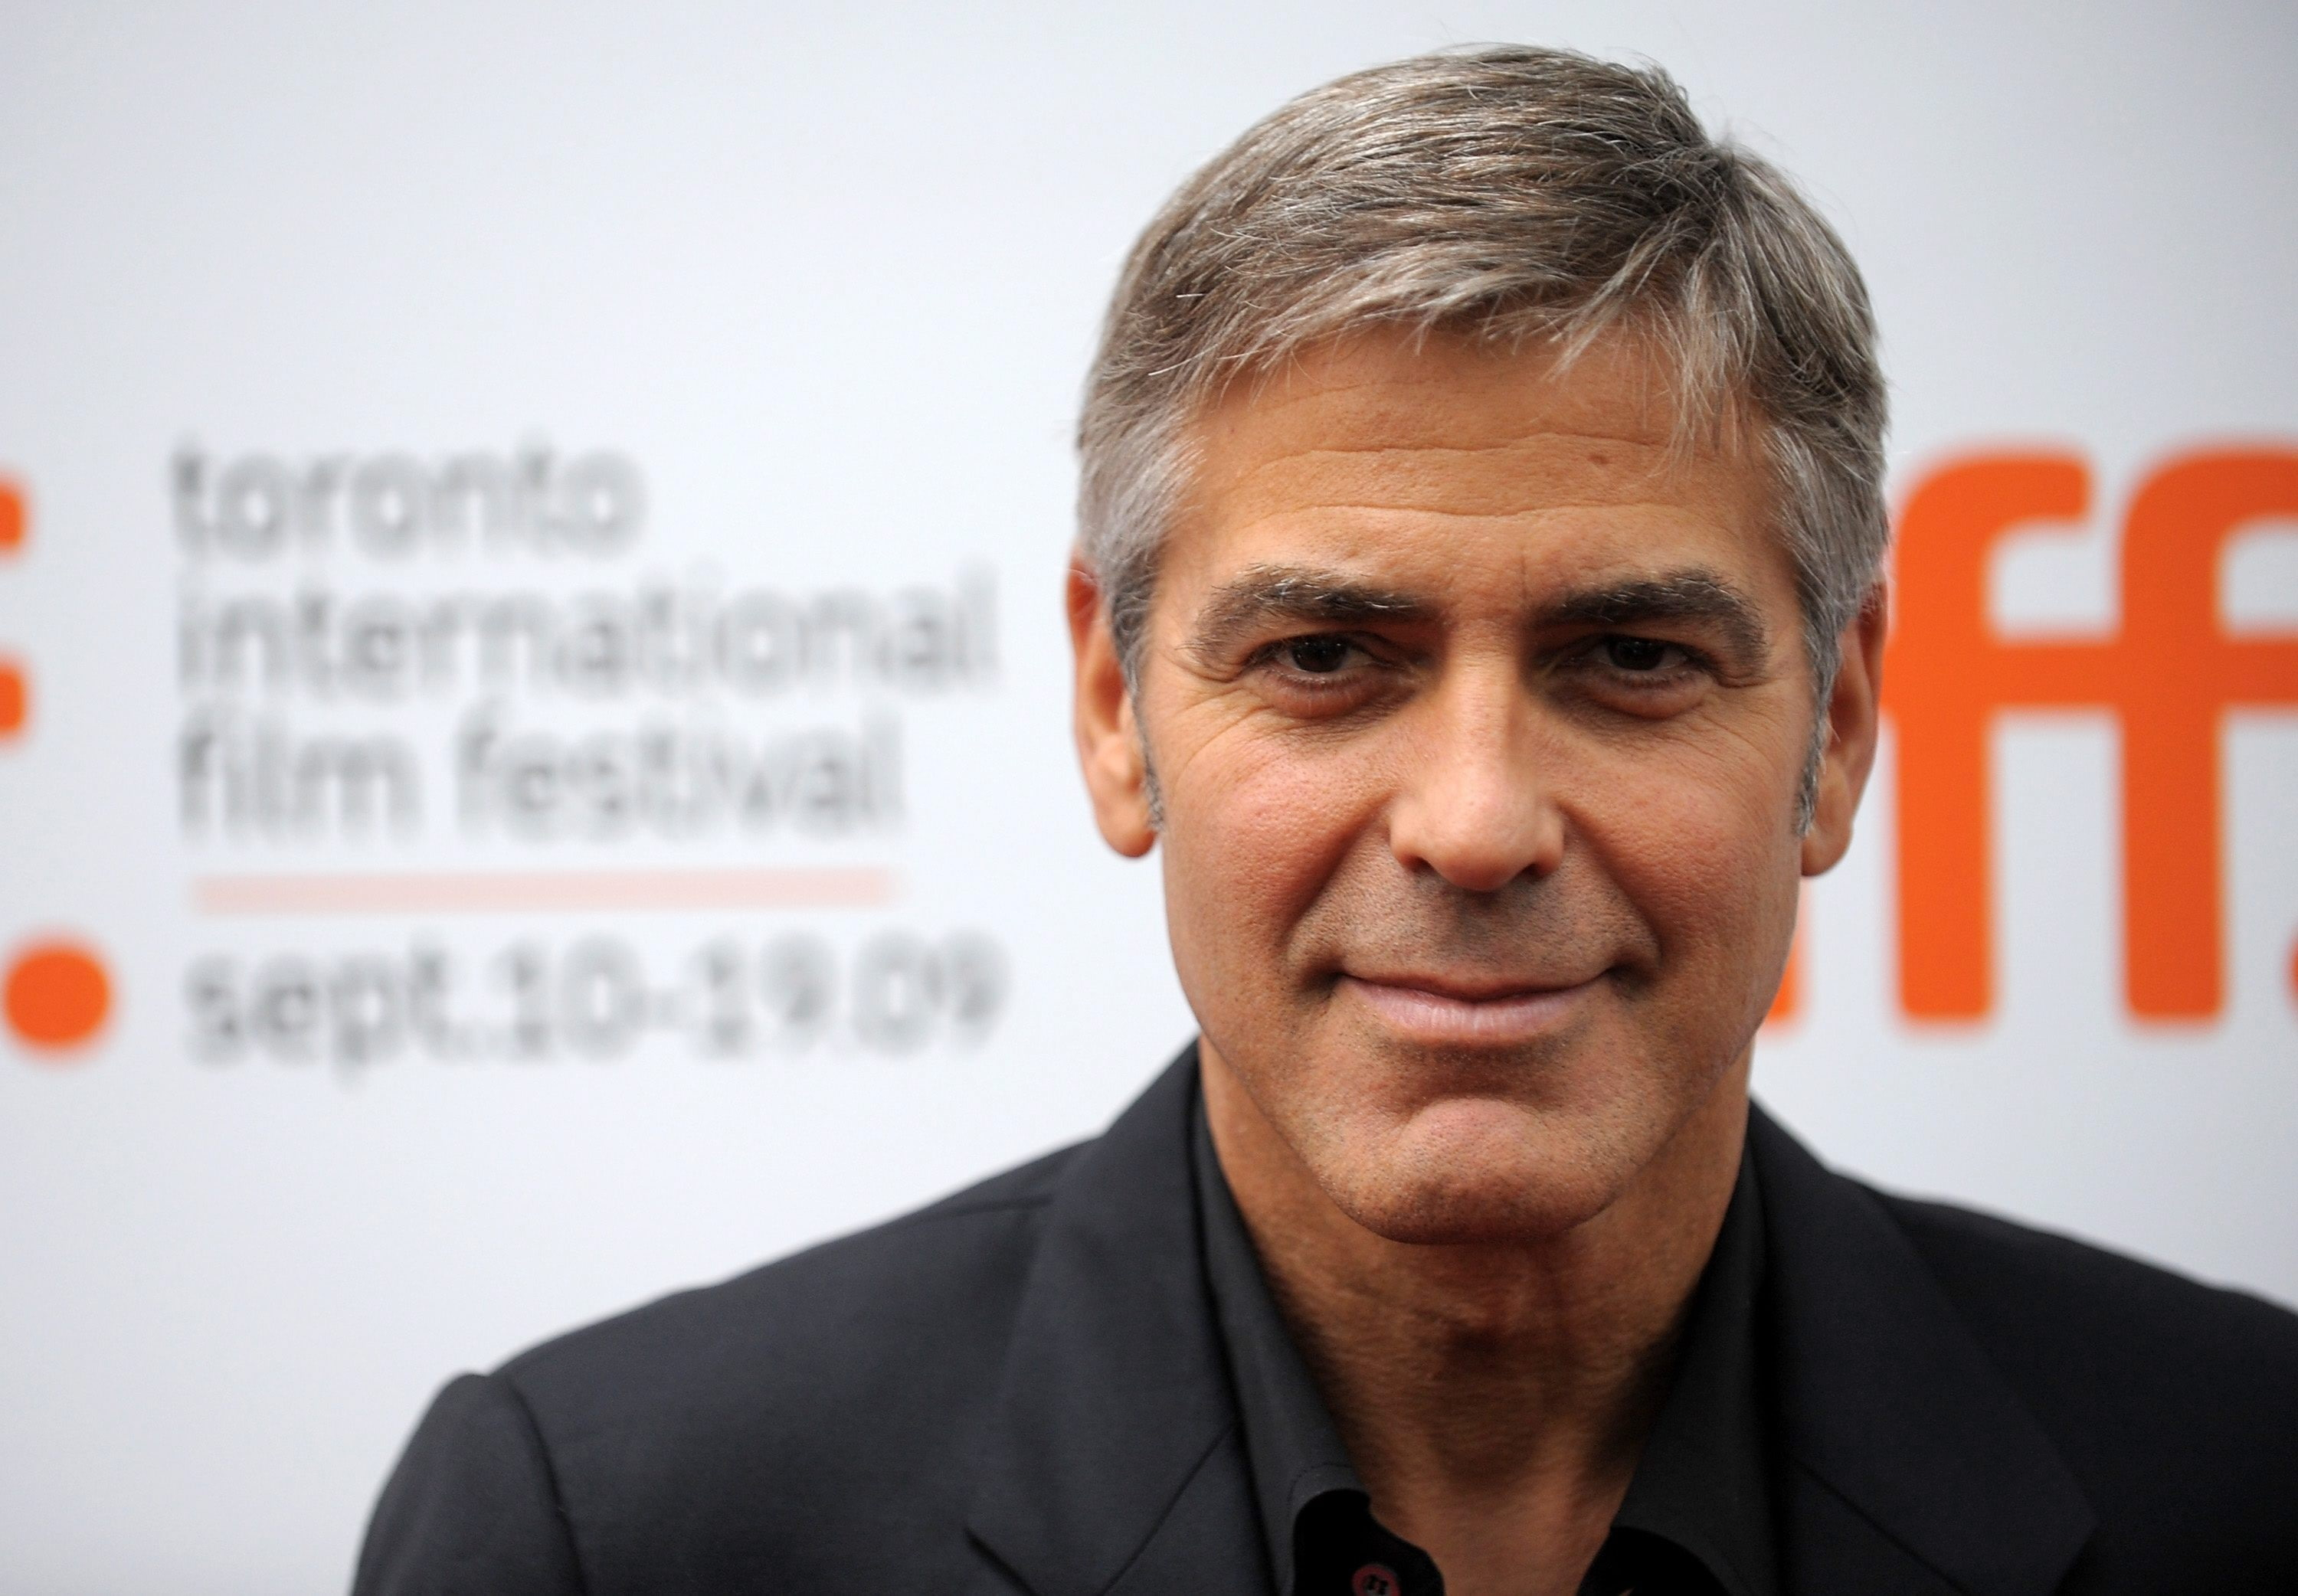 HD wallpaper George clooney Celebrity Actor Hollywood Smile 3000x2084